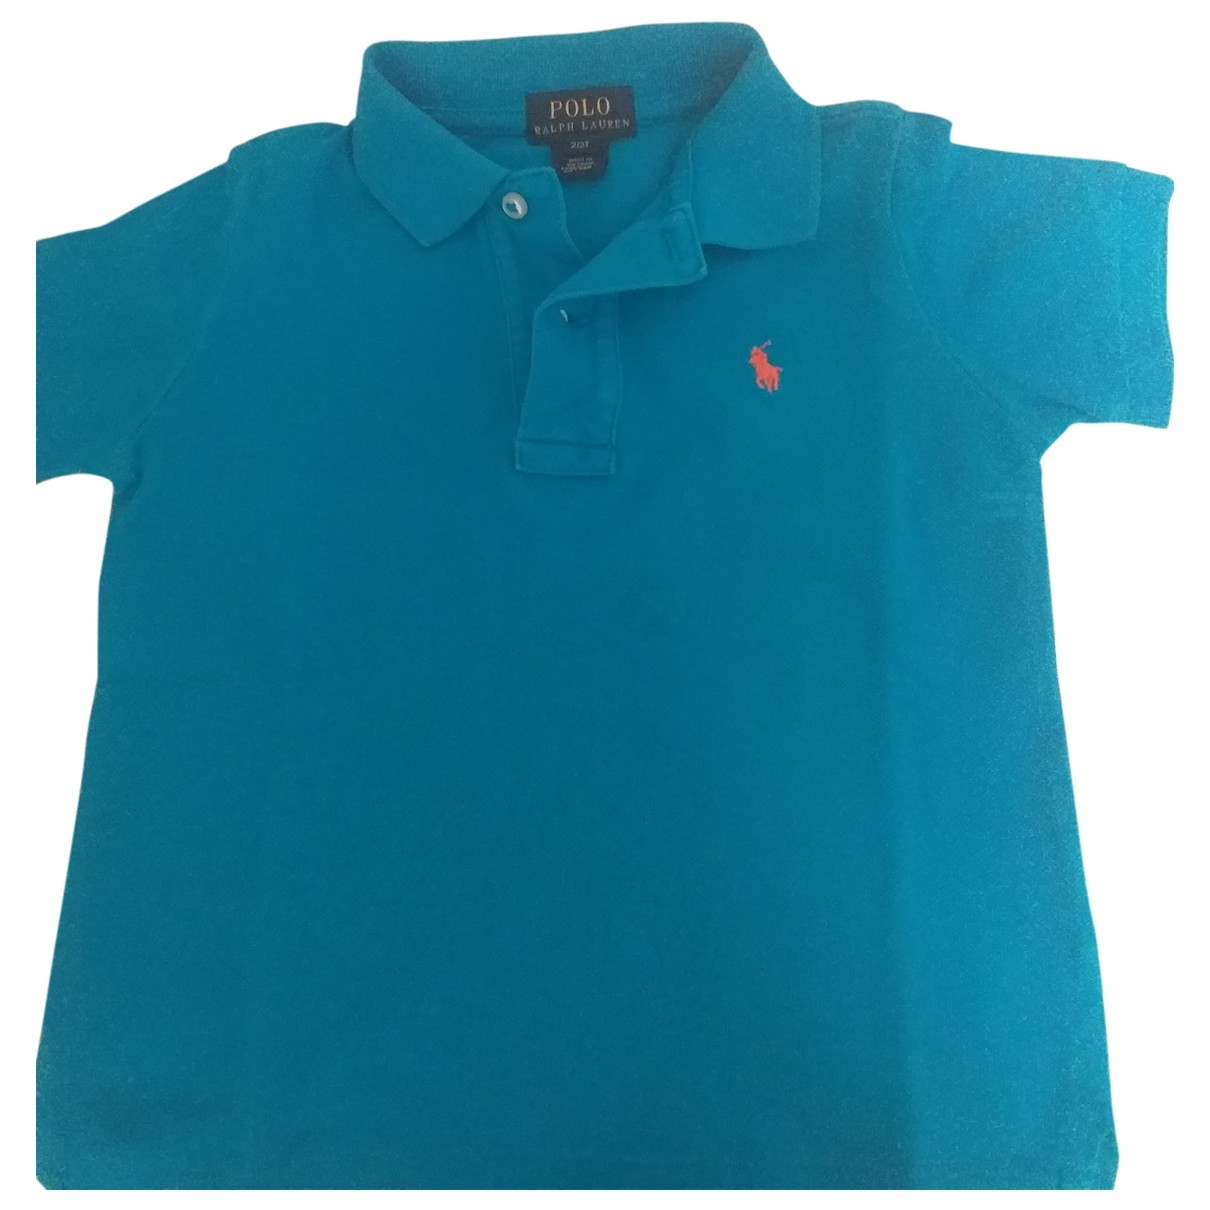 Polo Ralph Lauren \N Blue Cotton  top for Kids 2 years - up to 86cm FR